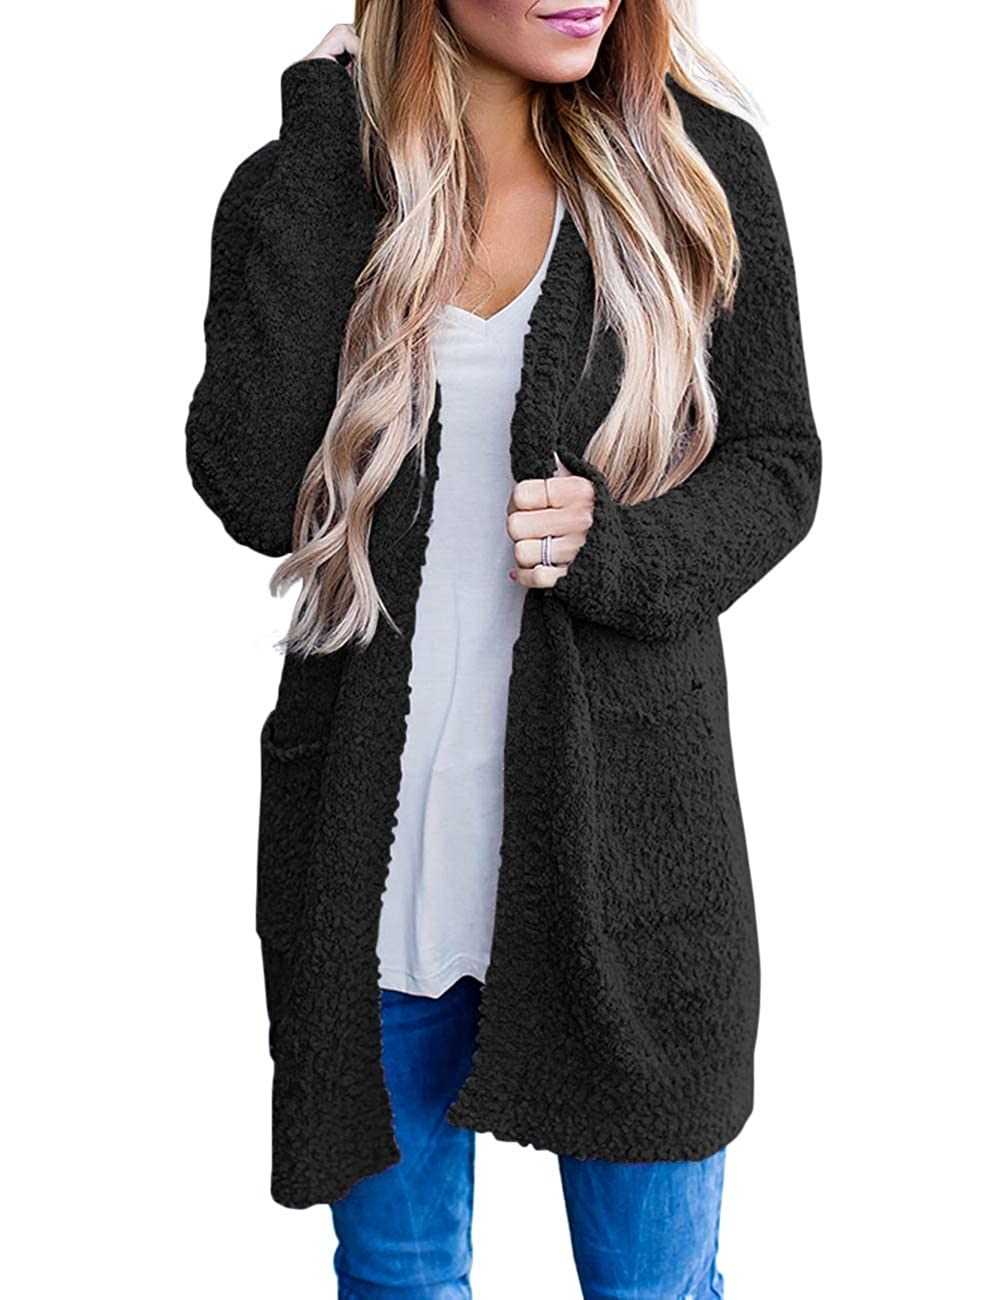 MEROKEETY Women s Long Sleeve Soft Chunky Knit Sweater Open Front Cardigan  Outwear with Pockets at Amazon Women s Clothing store  9eb2a0295